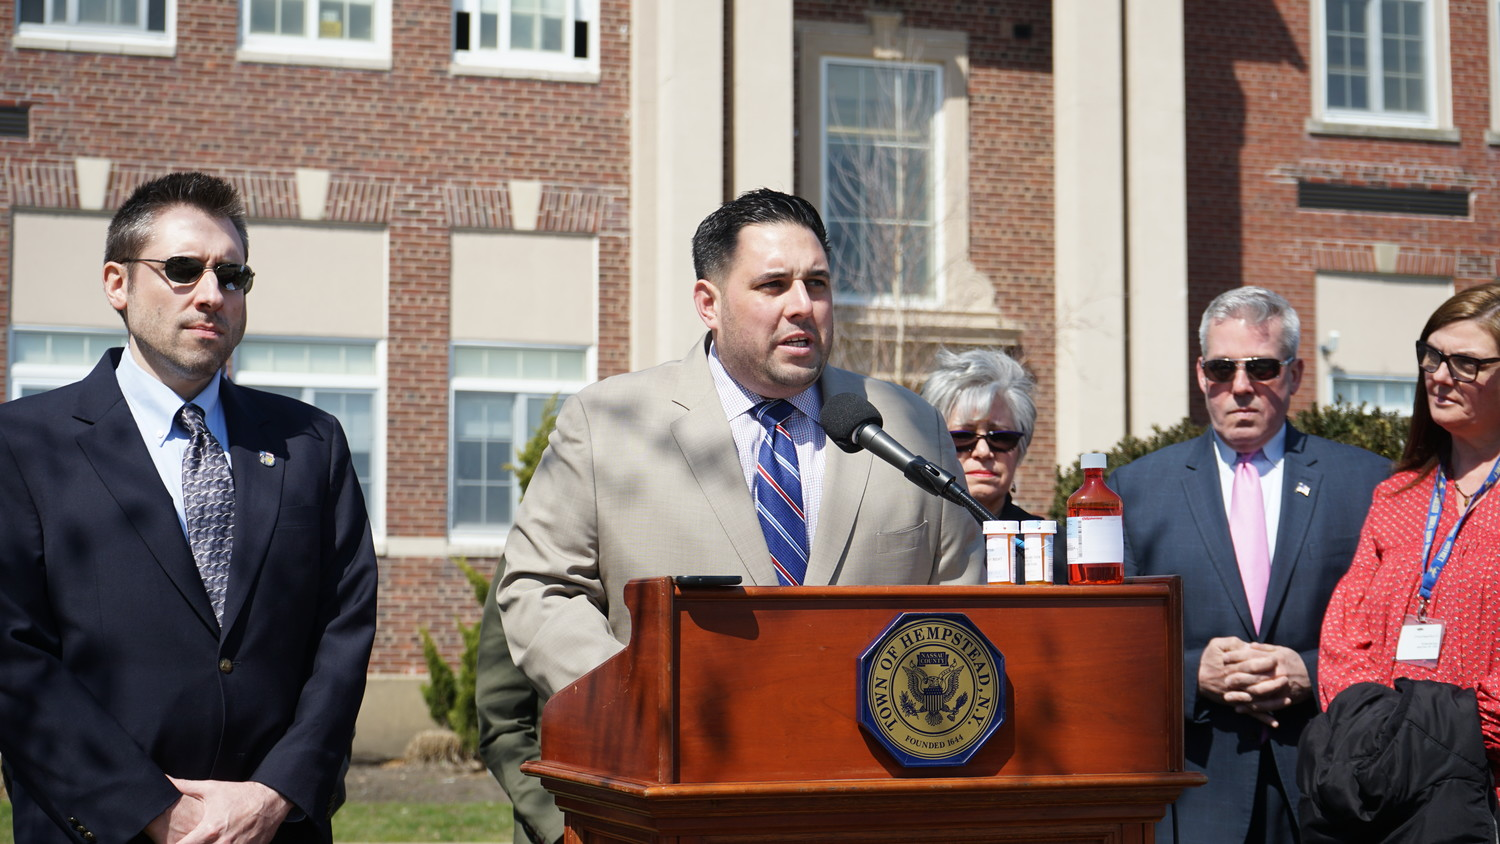 Town Councilman Anthony D'Esposito, center, introduced a program intended to help prevent prescription drug poisoning among children. Town Medical Director Dr. David Neubert, left, and Island Park school officials joined him.